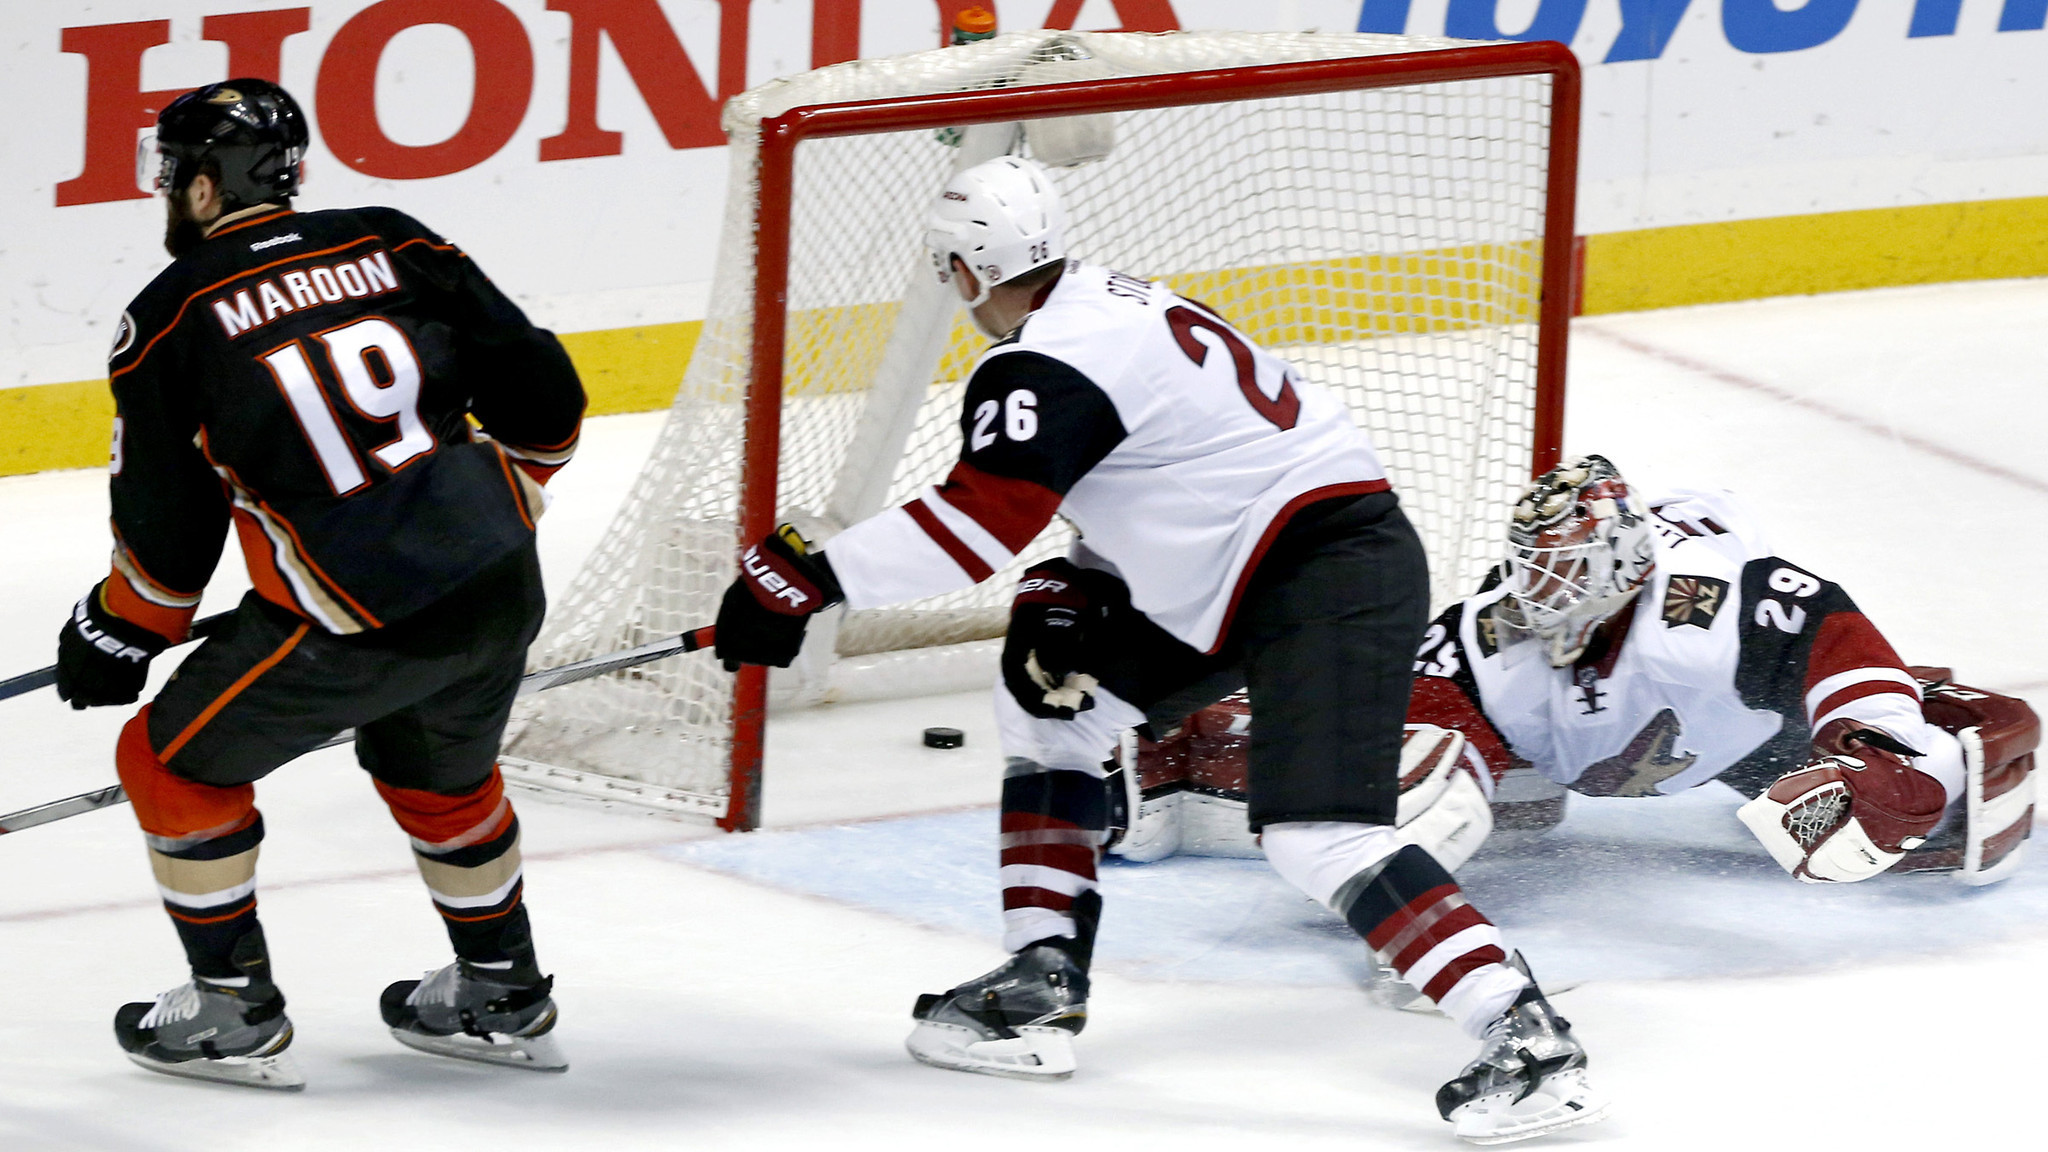 La-sp-sn-ducks-coyotes-what-we-learned-20160206